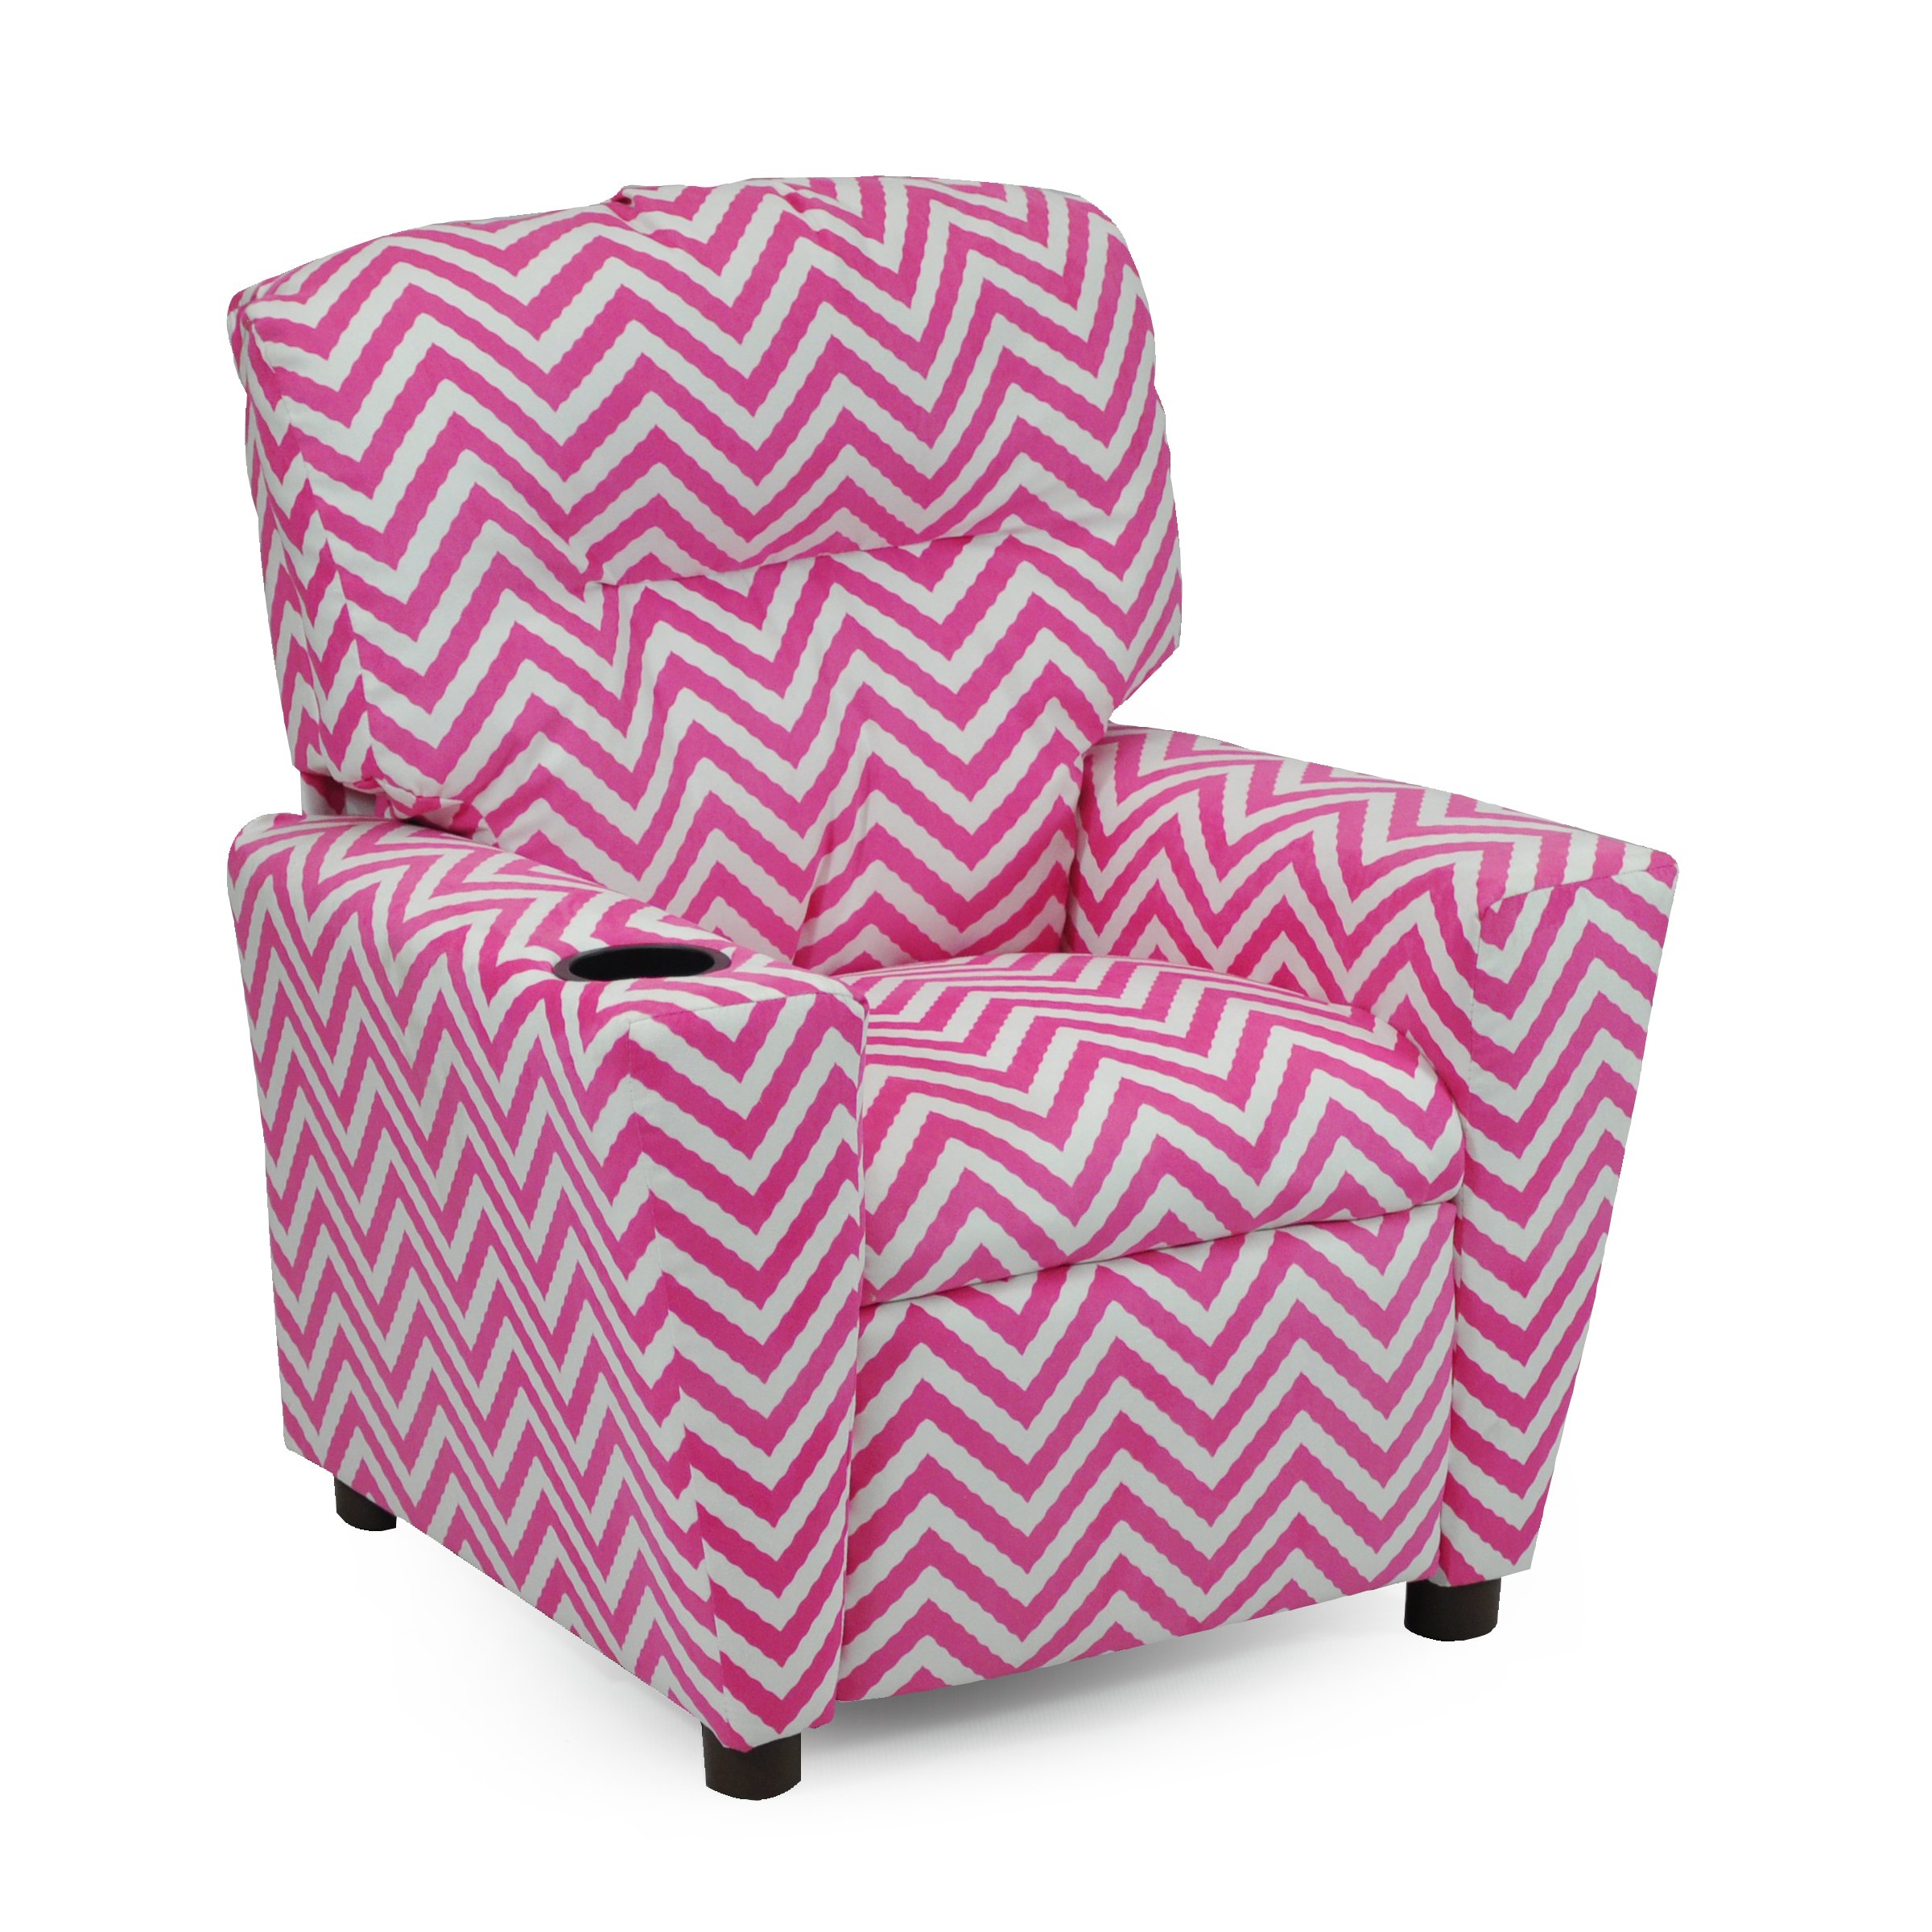 Girls Pink Chevron Recliner Chair With Cupholder - Childrens Reclining Upholstered Armchair - Shipping Included